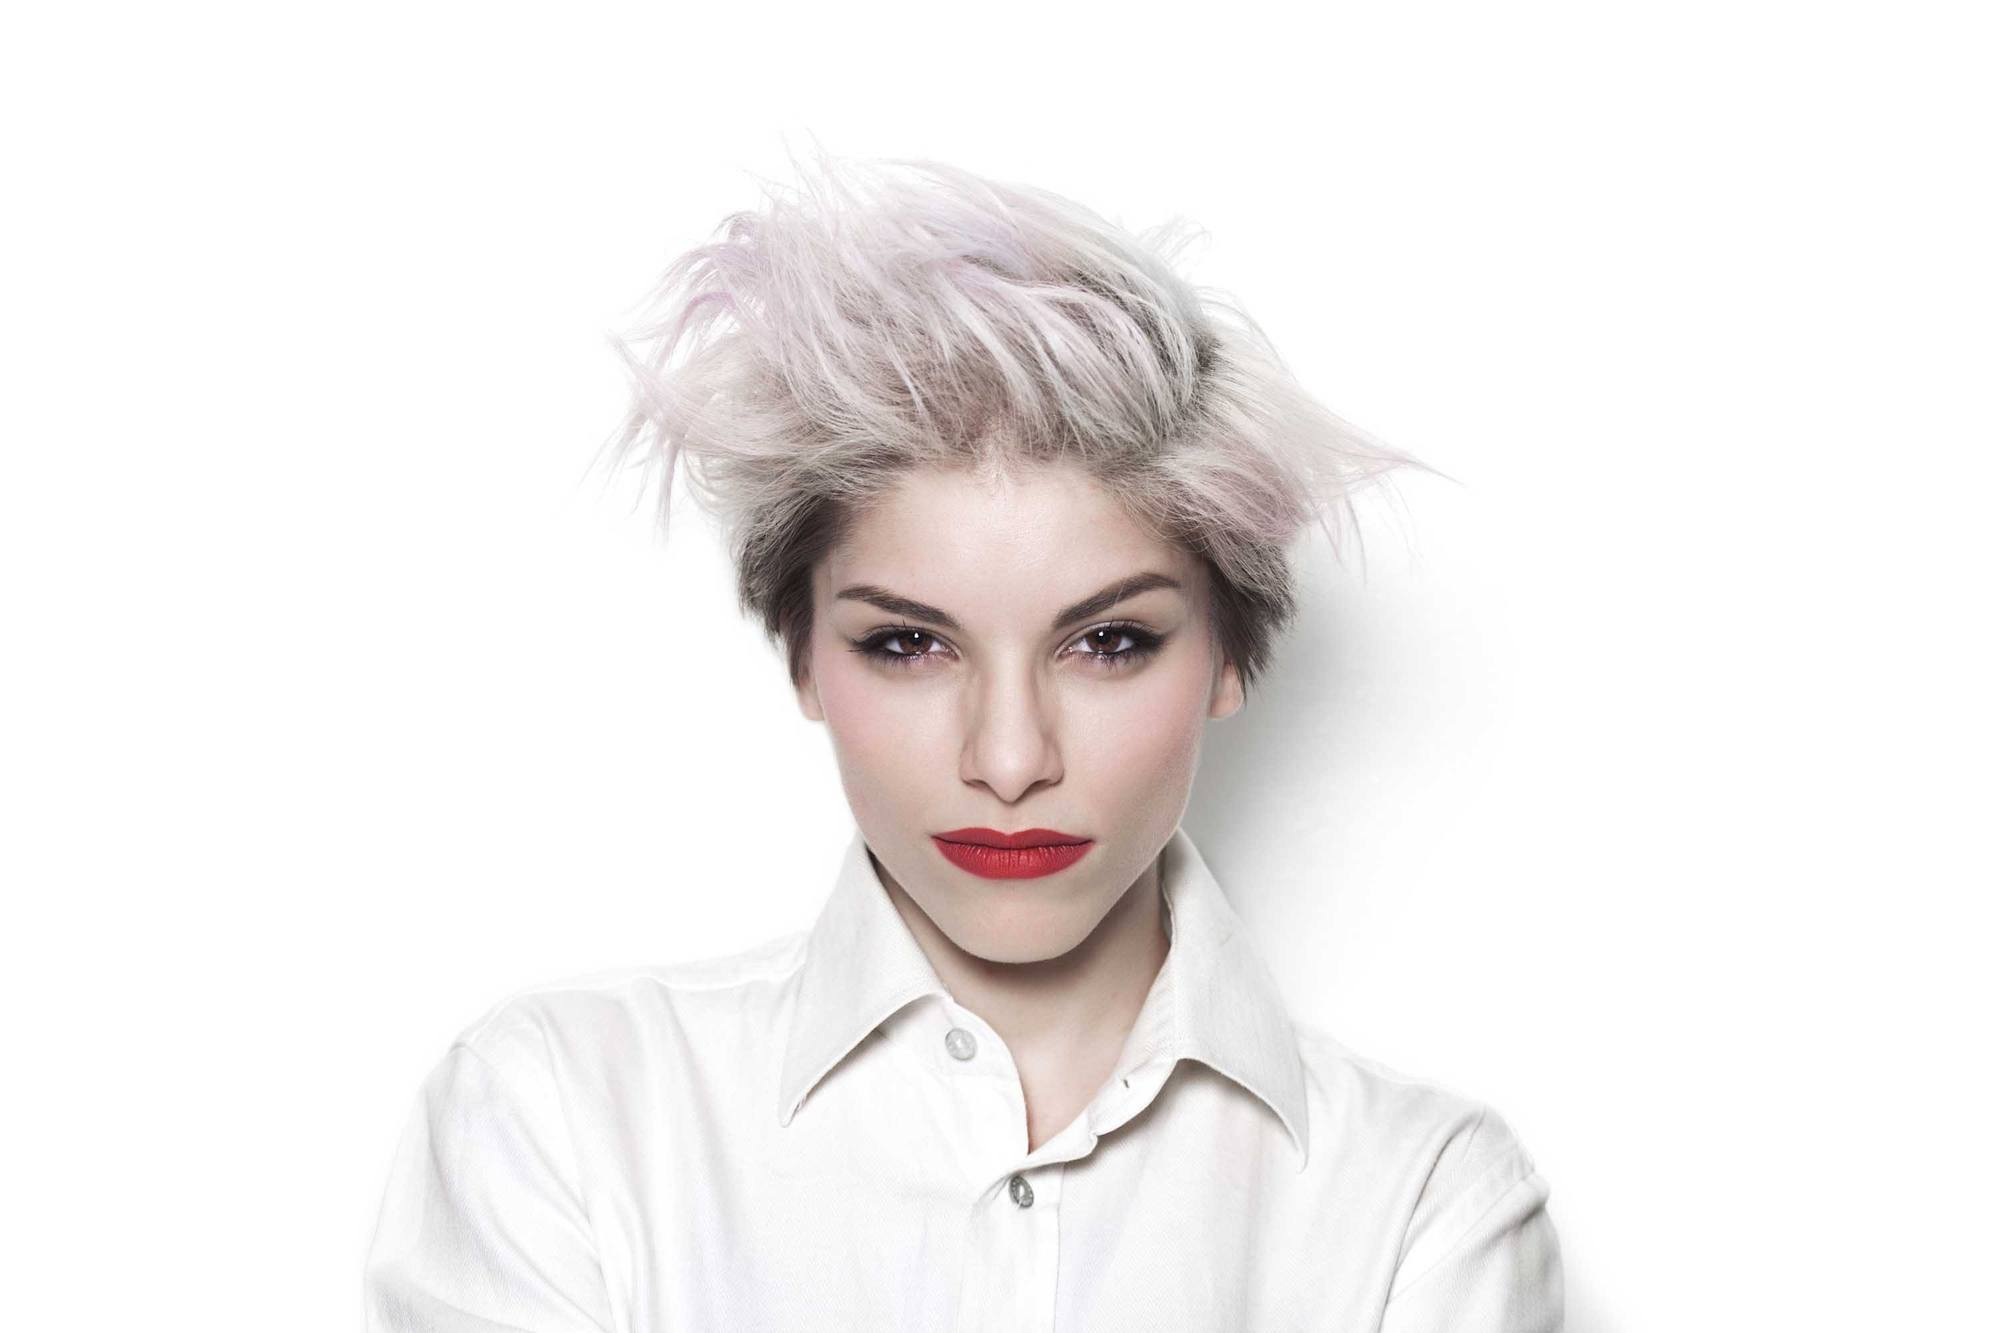 Short Spiky Haircuts: 5 Edgy Looks You'll Love